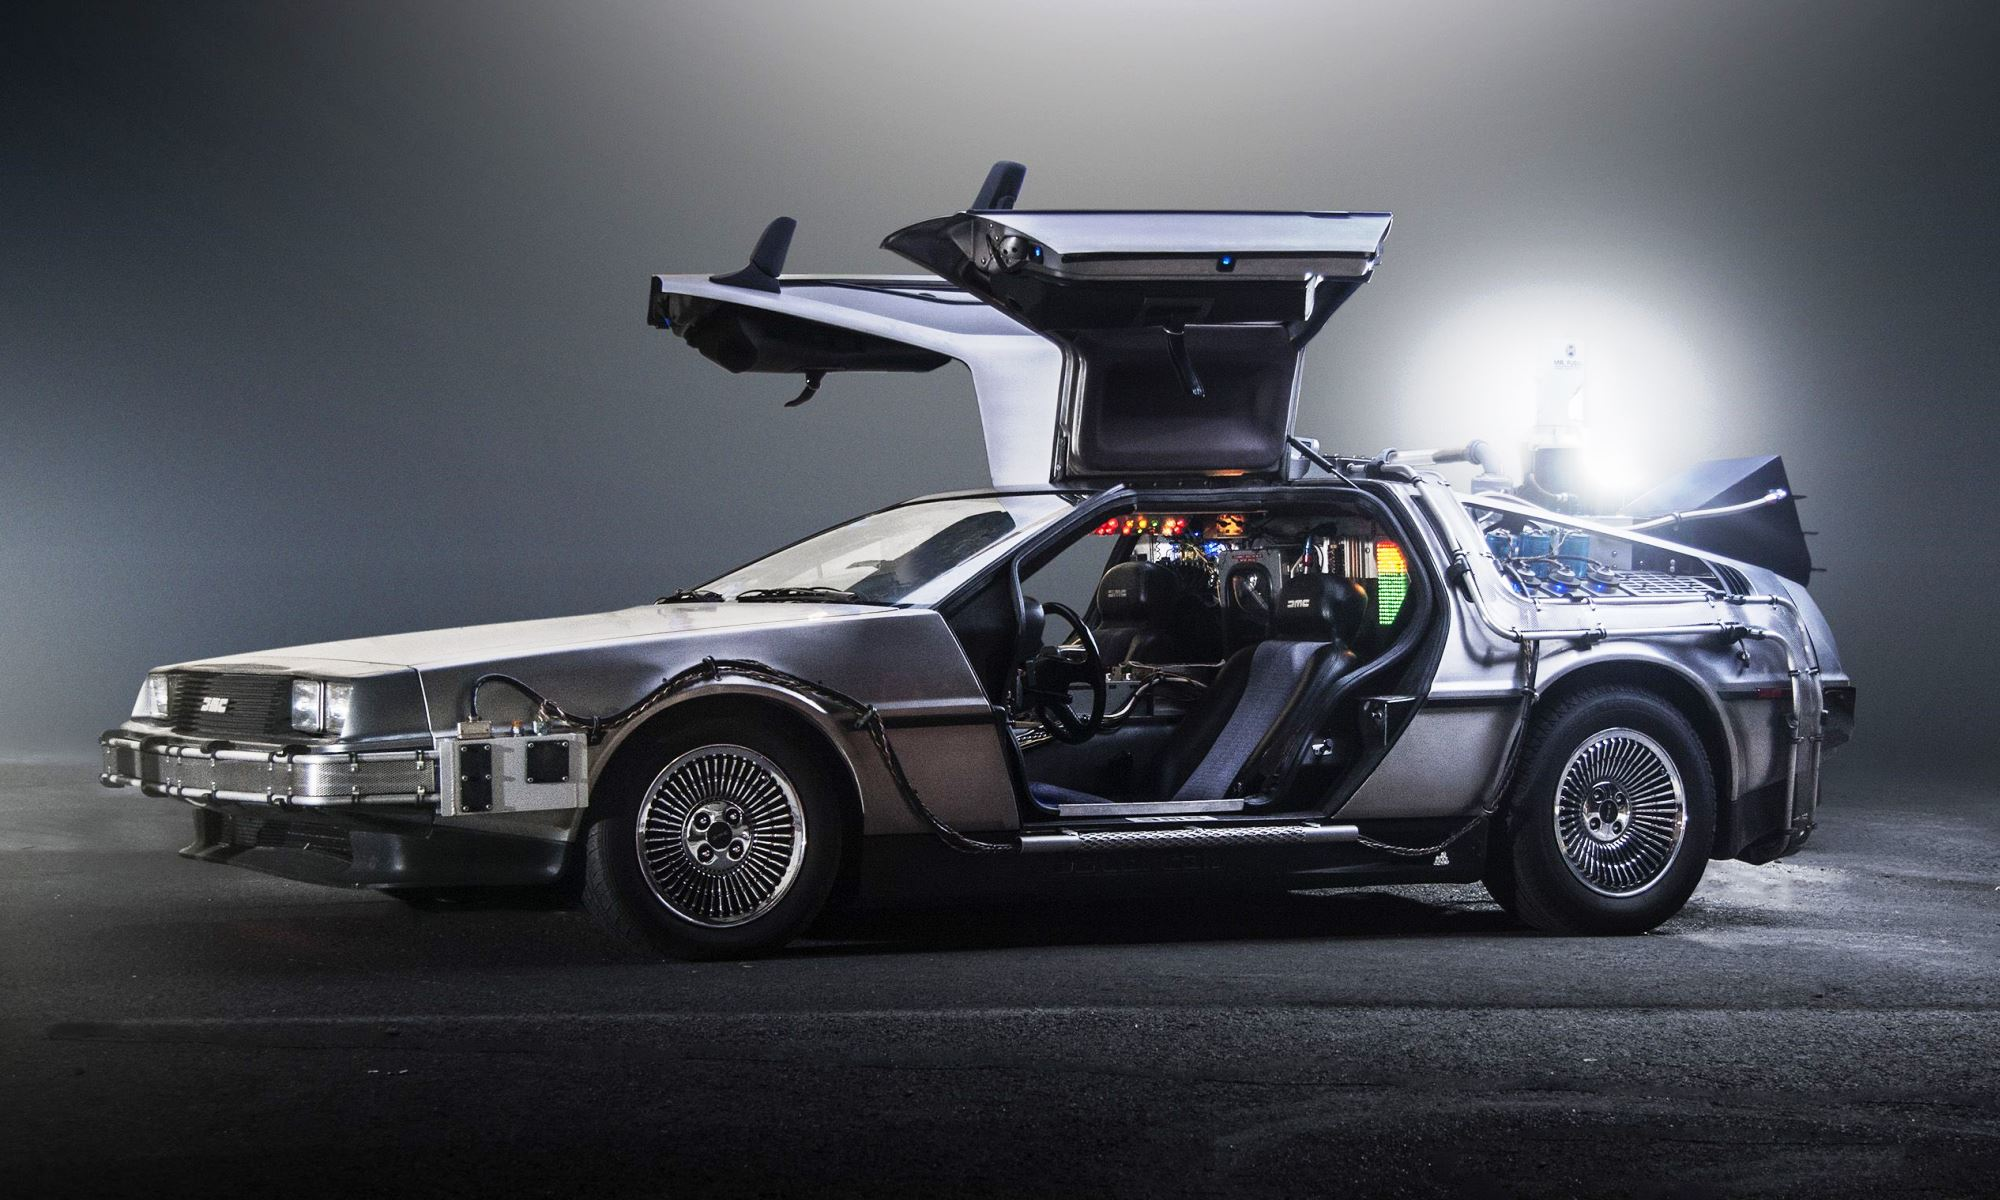 Doc Brown's DeLorean